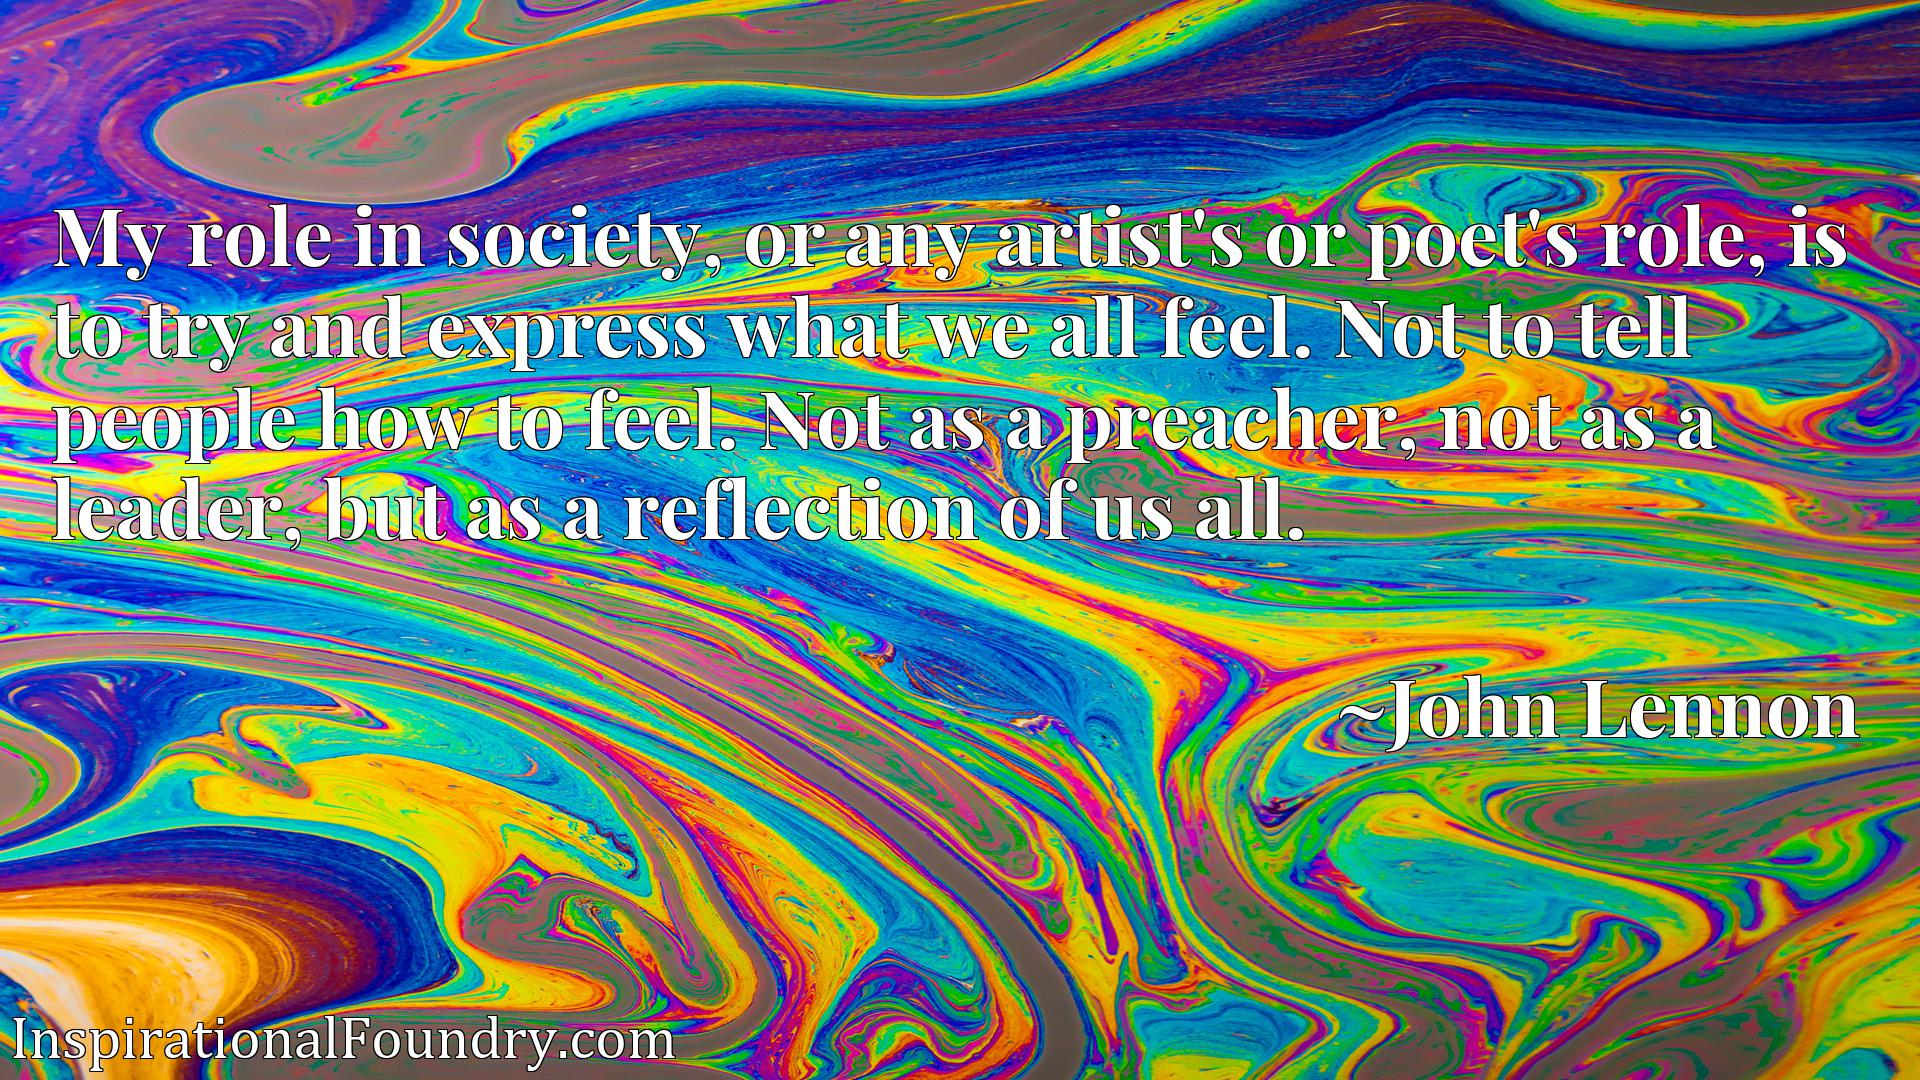 My role in society, or any artist's or poet's role, is to try and express what we all feel. Not to tell people how to feel. Not as a preacher, not as a leader, but as a reflection of us all.